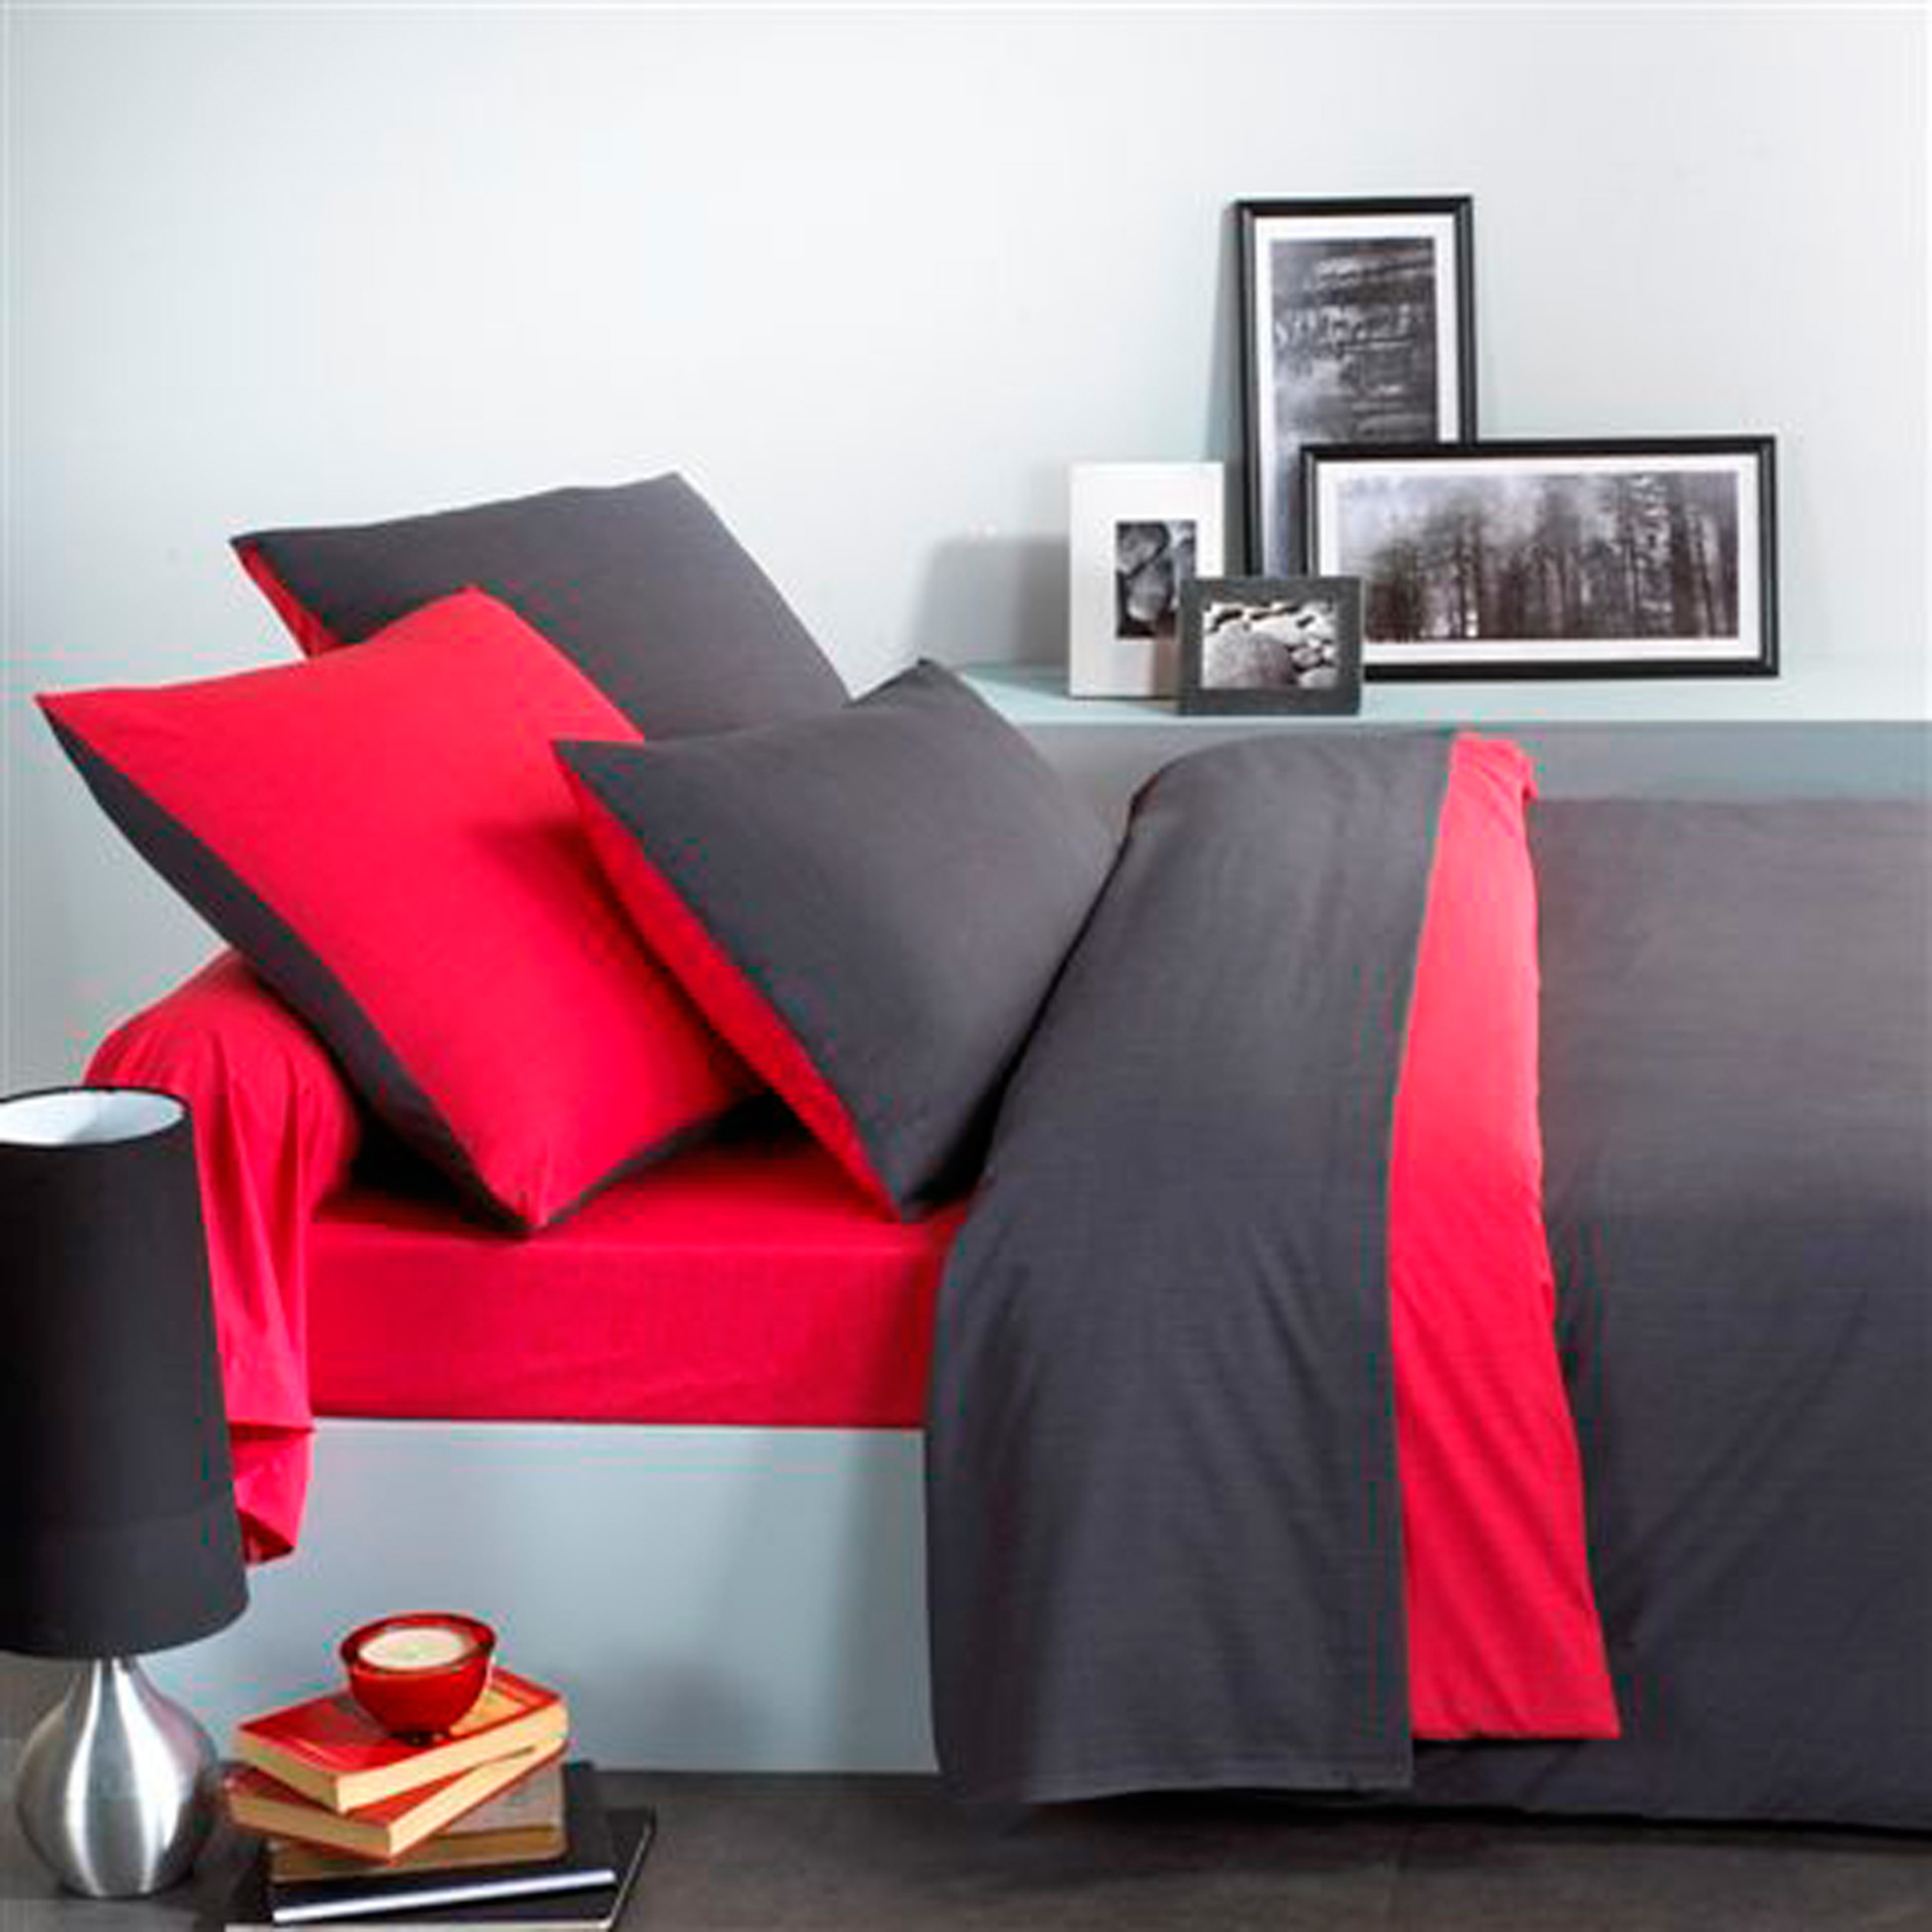 parure de couette 1 pers ecorce rouge noir 140 x 200 cm. Black Bedroom Furniture Sets. Home Design Ideas